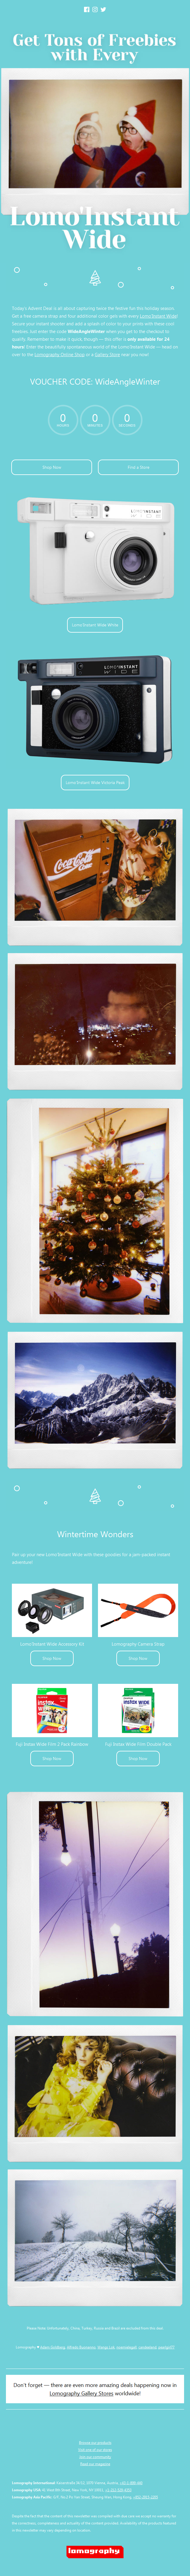 Get Tons of Freebies with Every Lomo'Instant Wide!